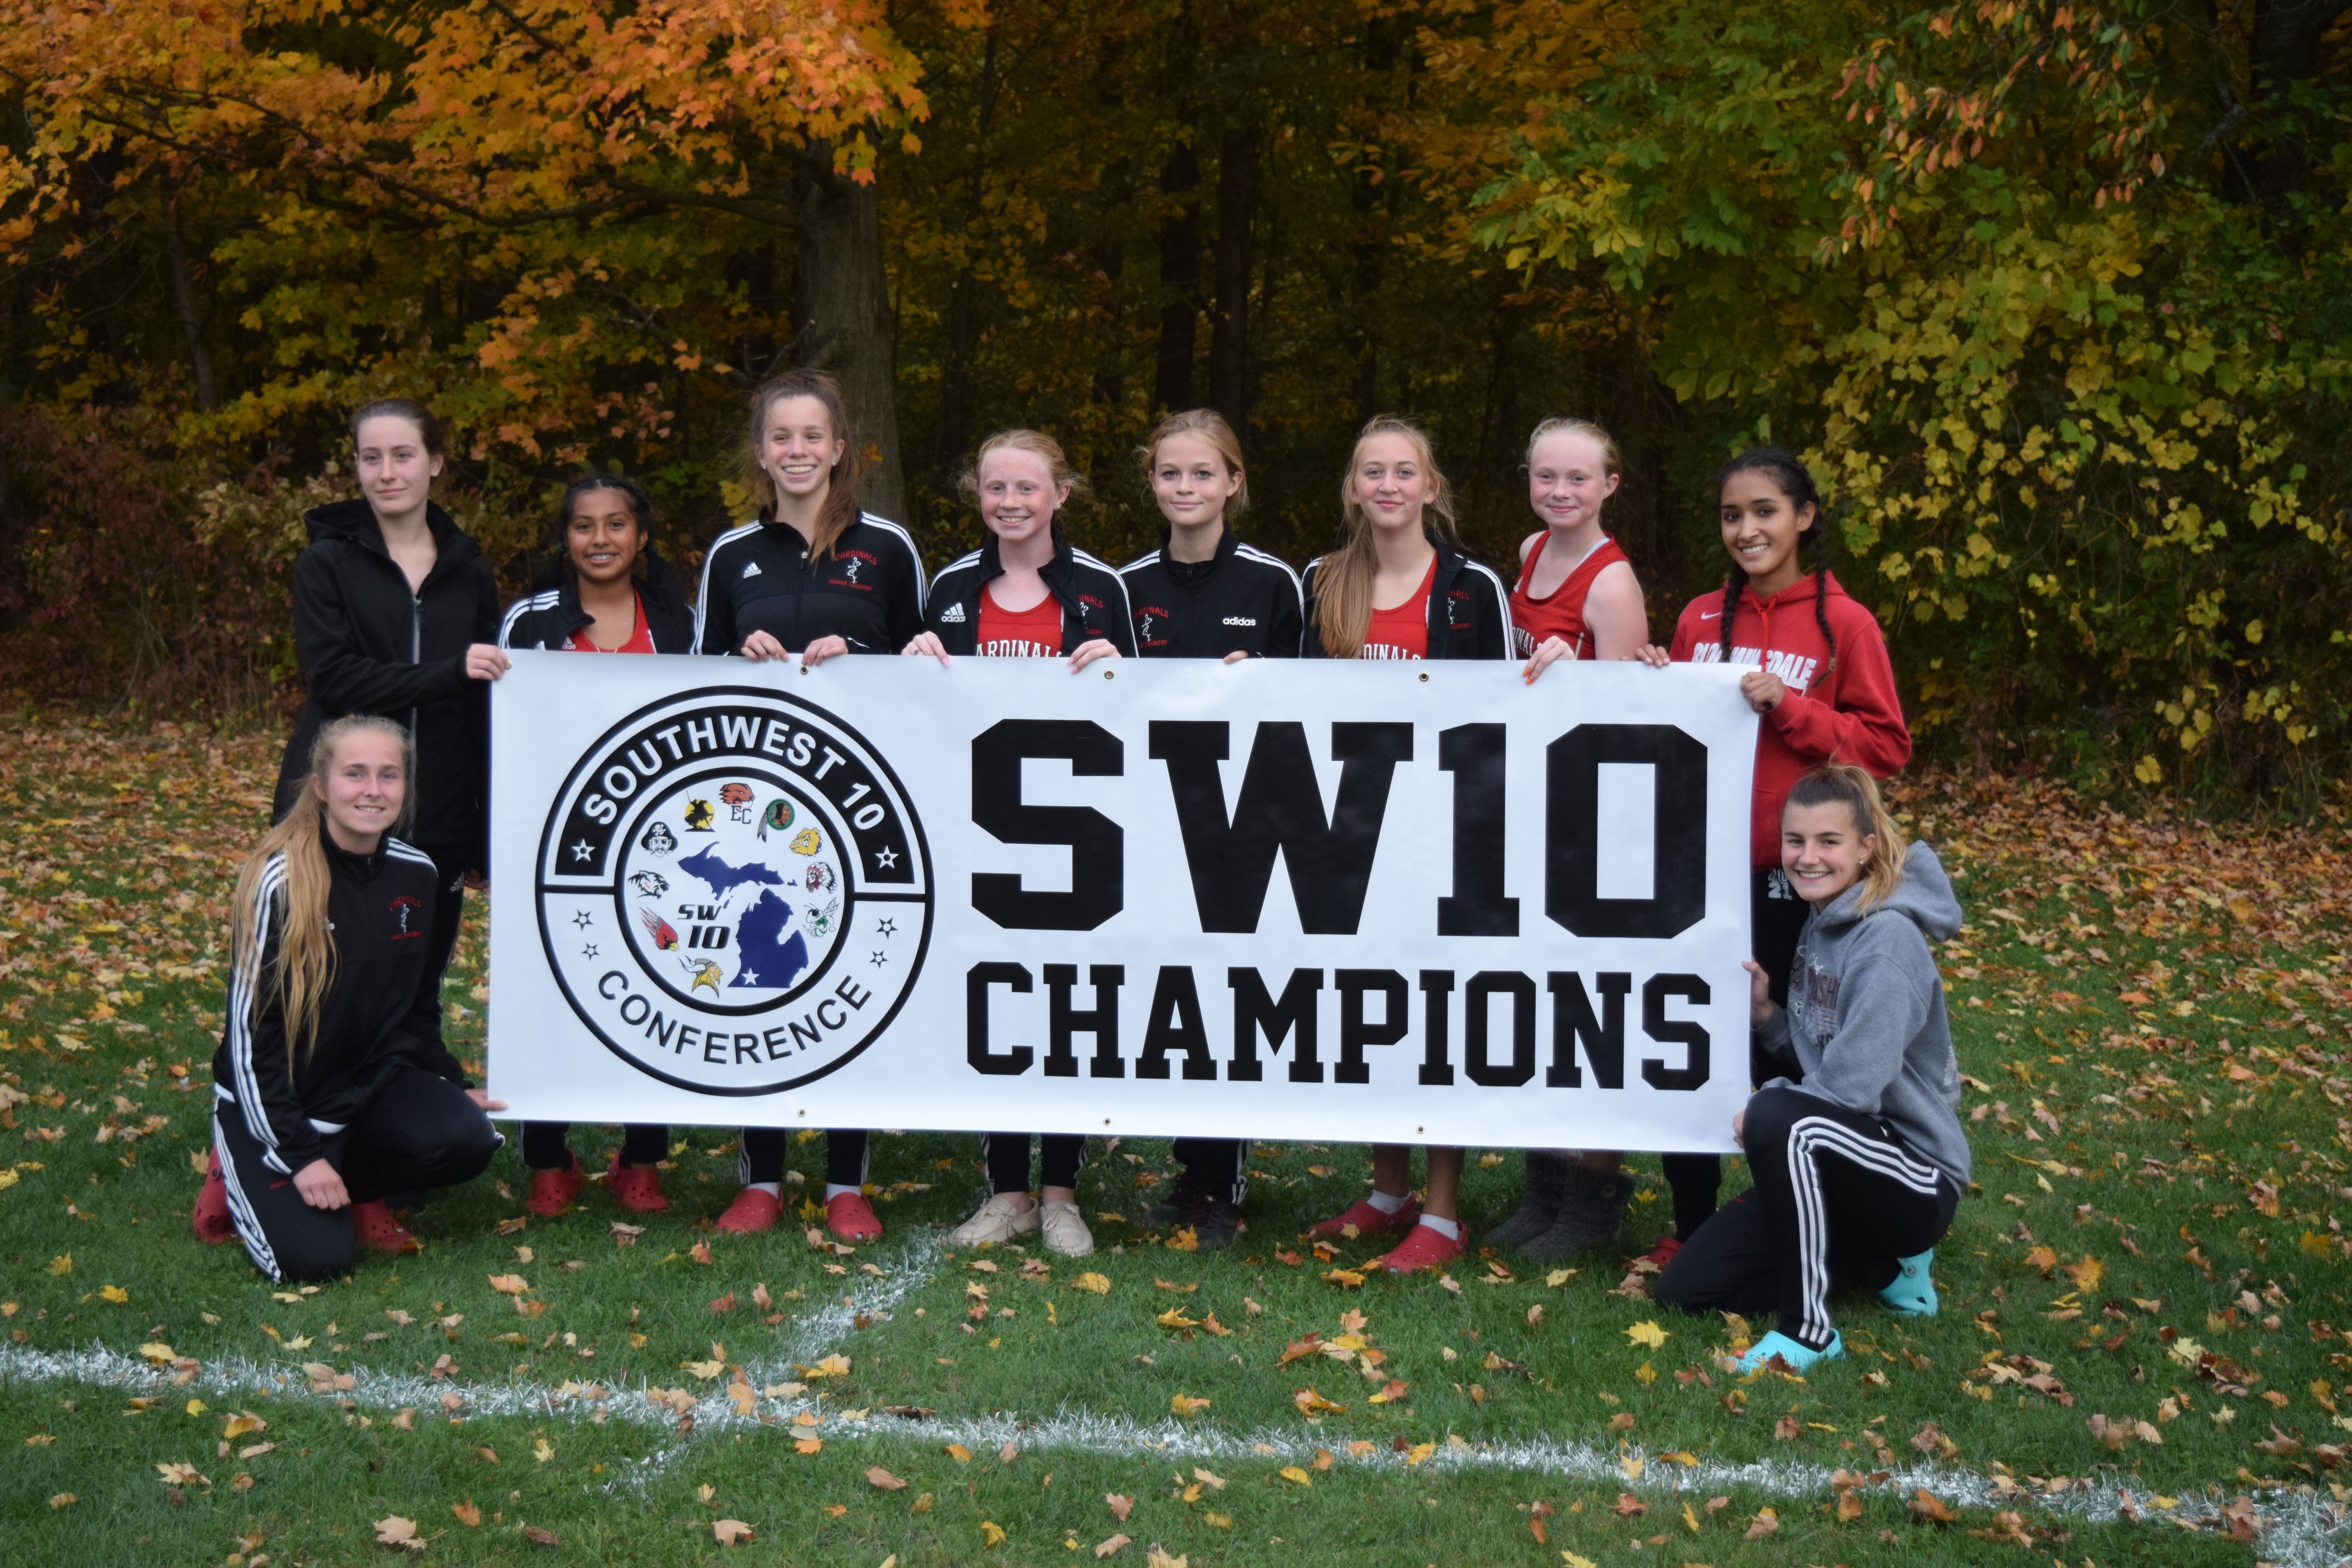 A picture of the team after the Southwest Conference Championship